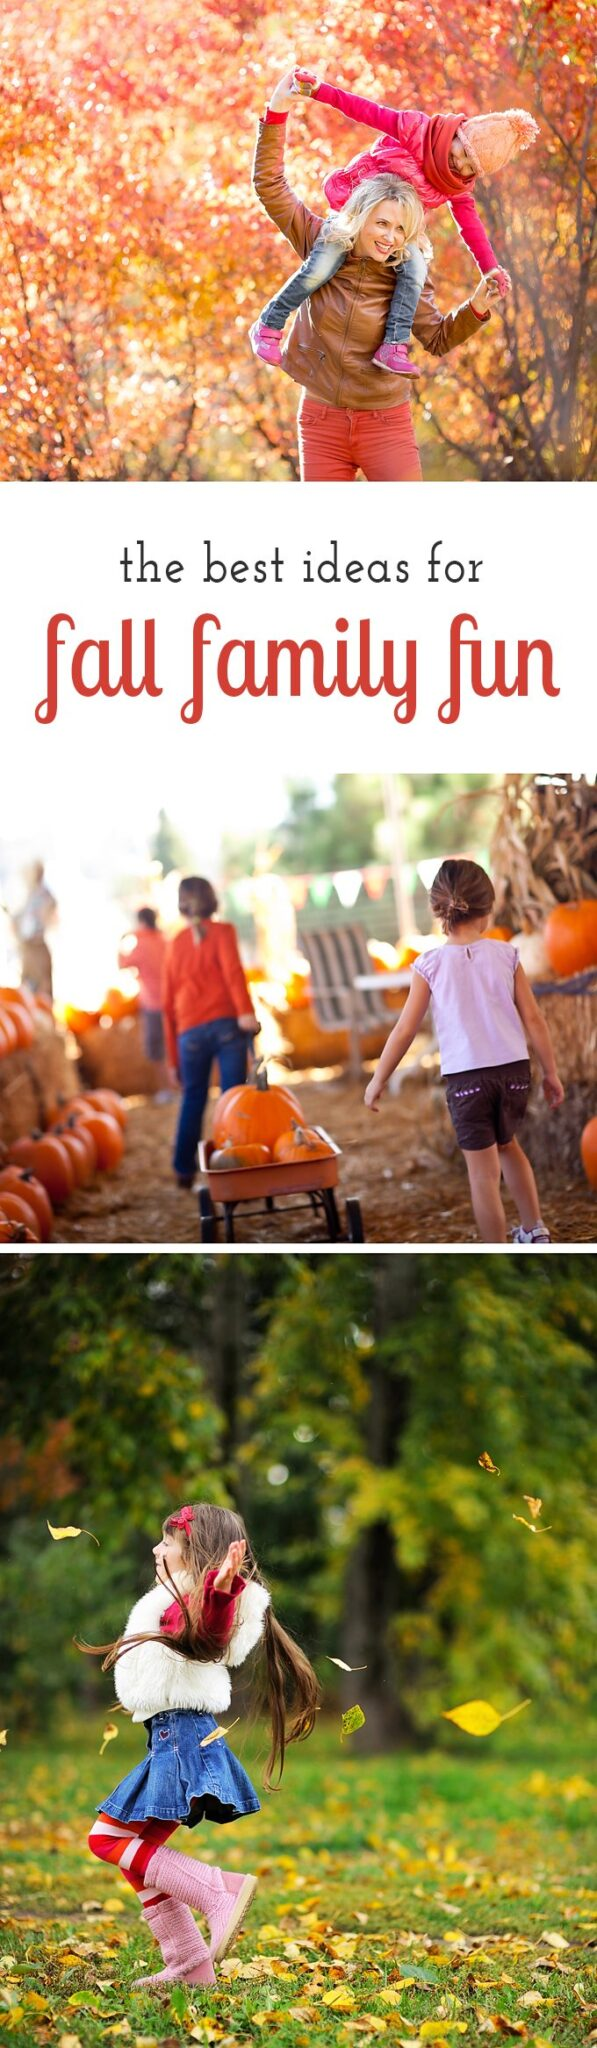 If you're on a quest to make the most of this beautiful, fleeting season with your family in simple, budget-friendly ways, then you'll appreciate this list of 10 Ways to Enjoy Fall Family Fun.